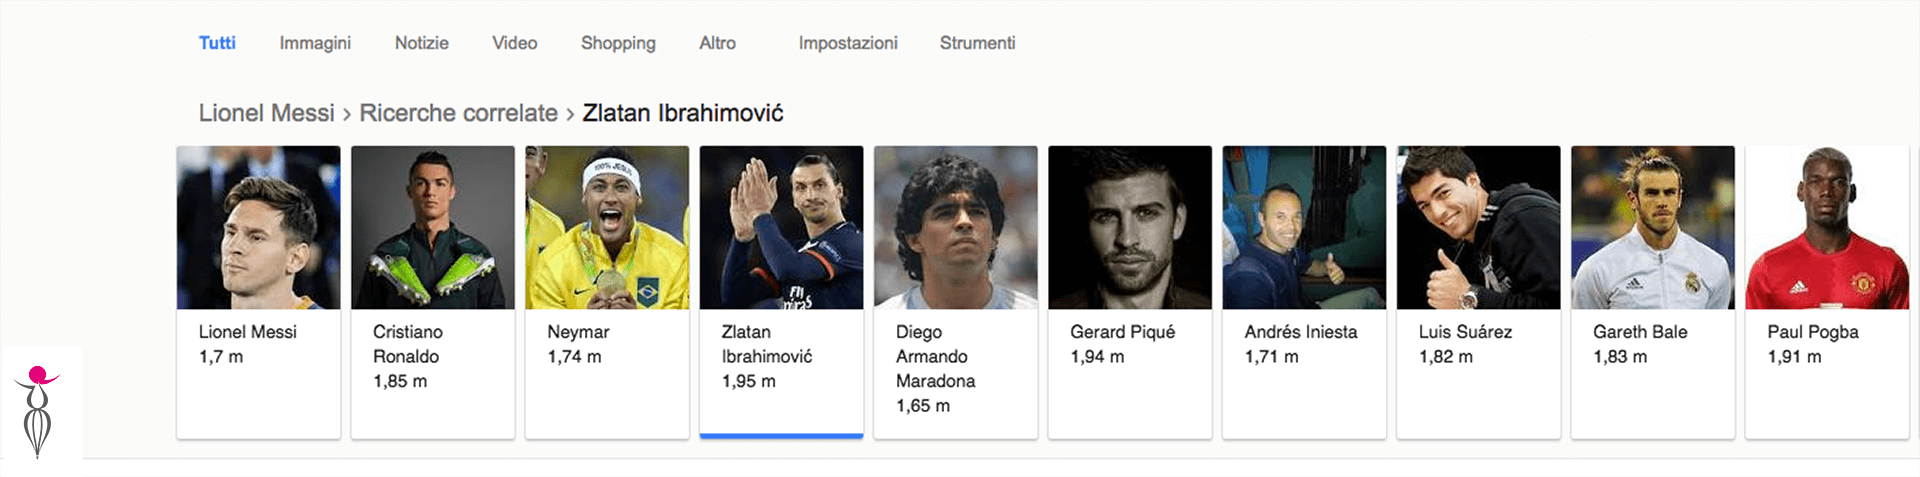 Google ricerche correlate